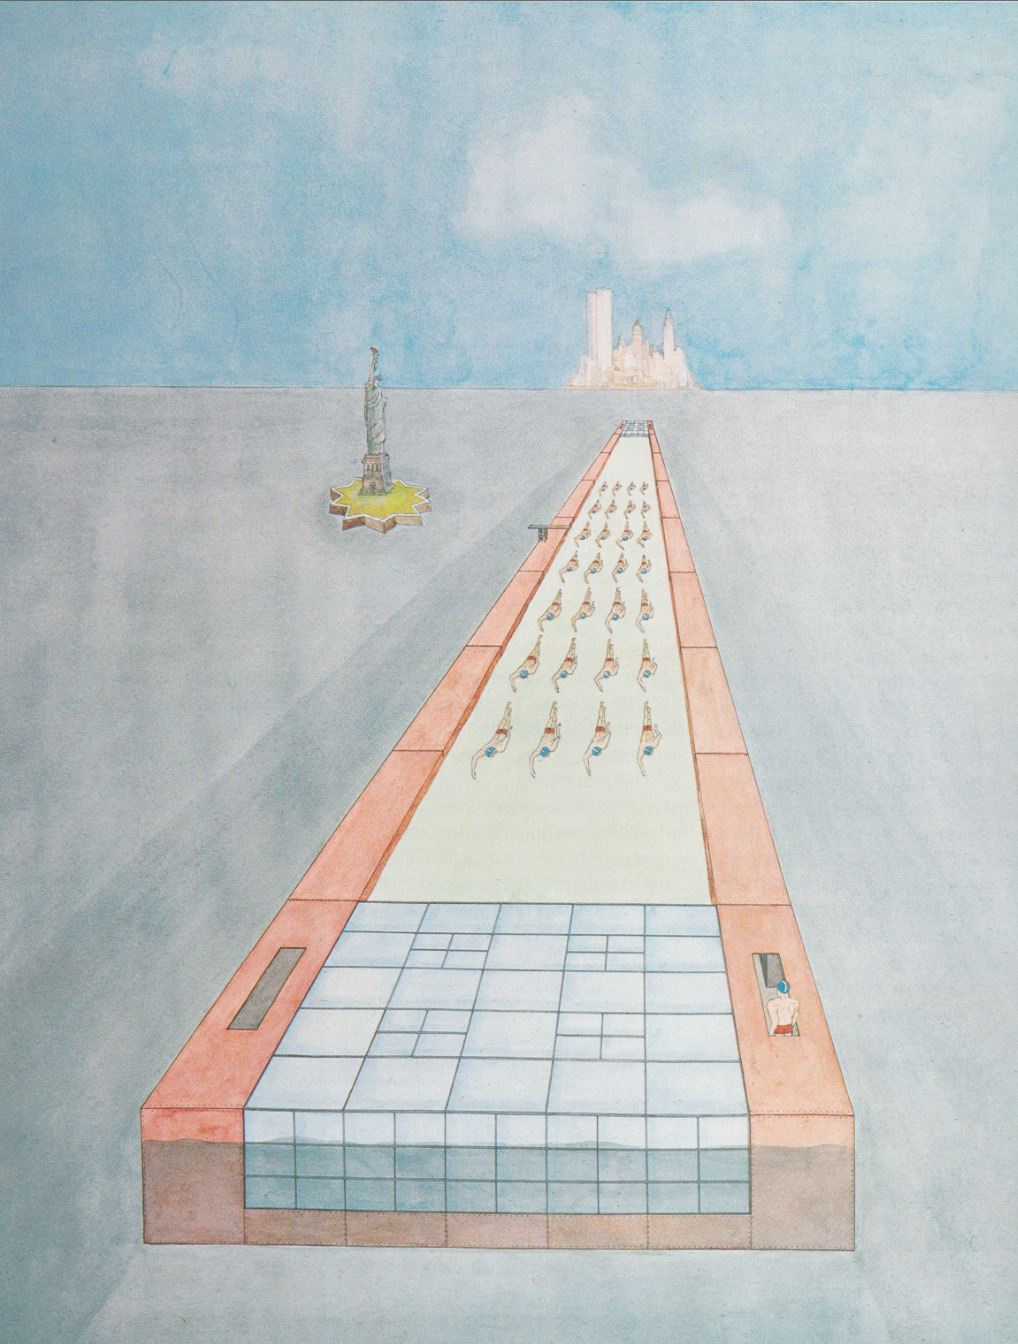 Rem Koolhaas : Delirious New York Arrival of The Floating Pool 1977